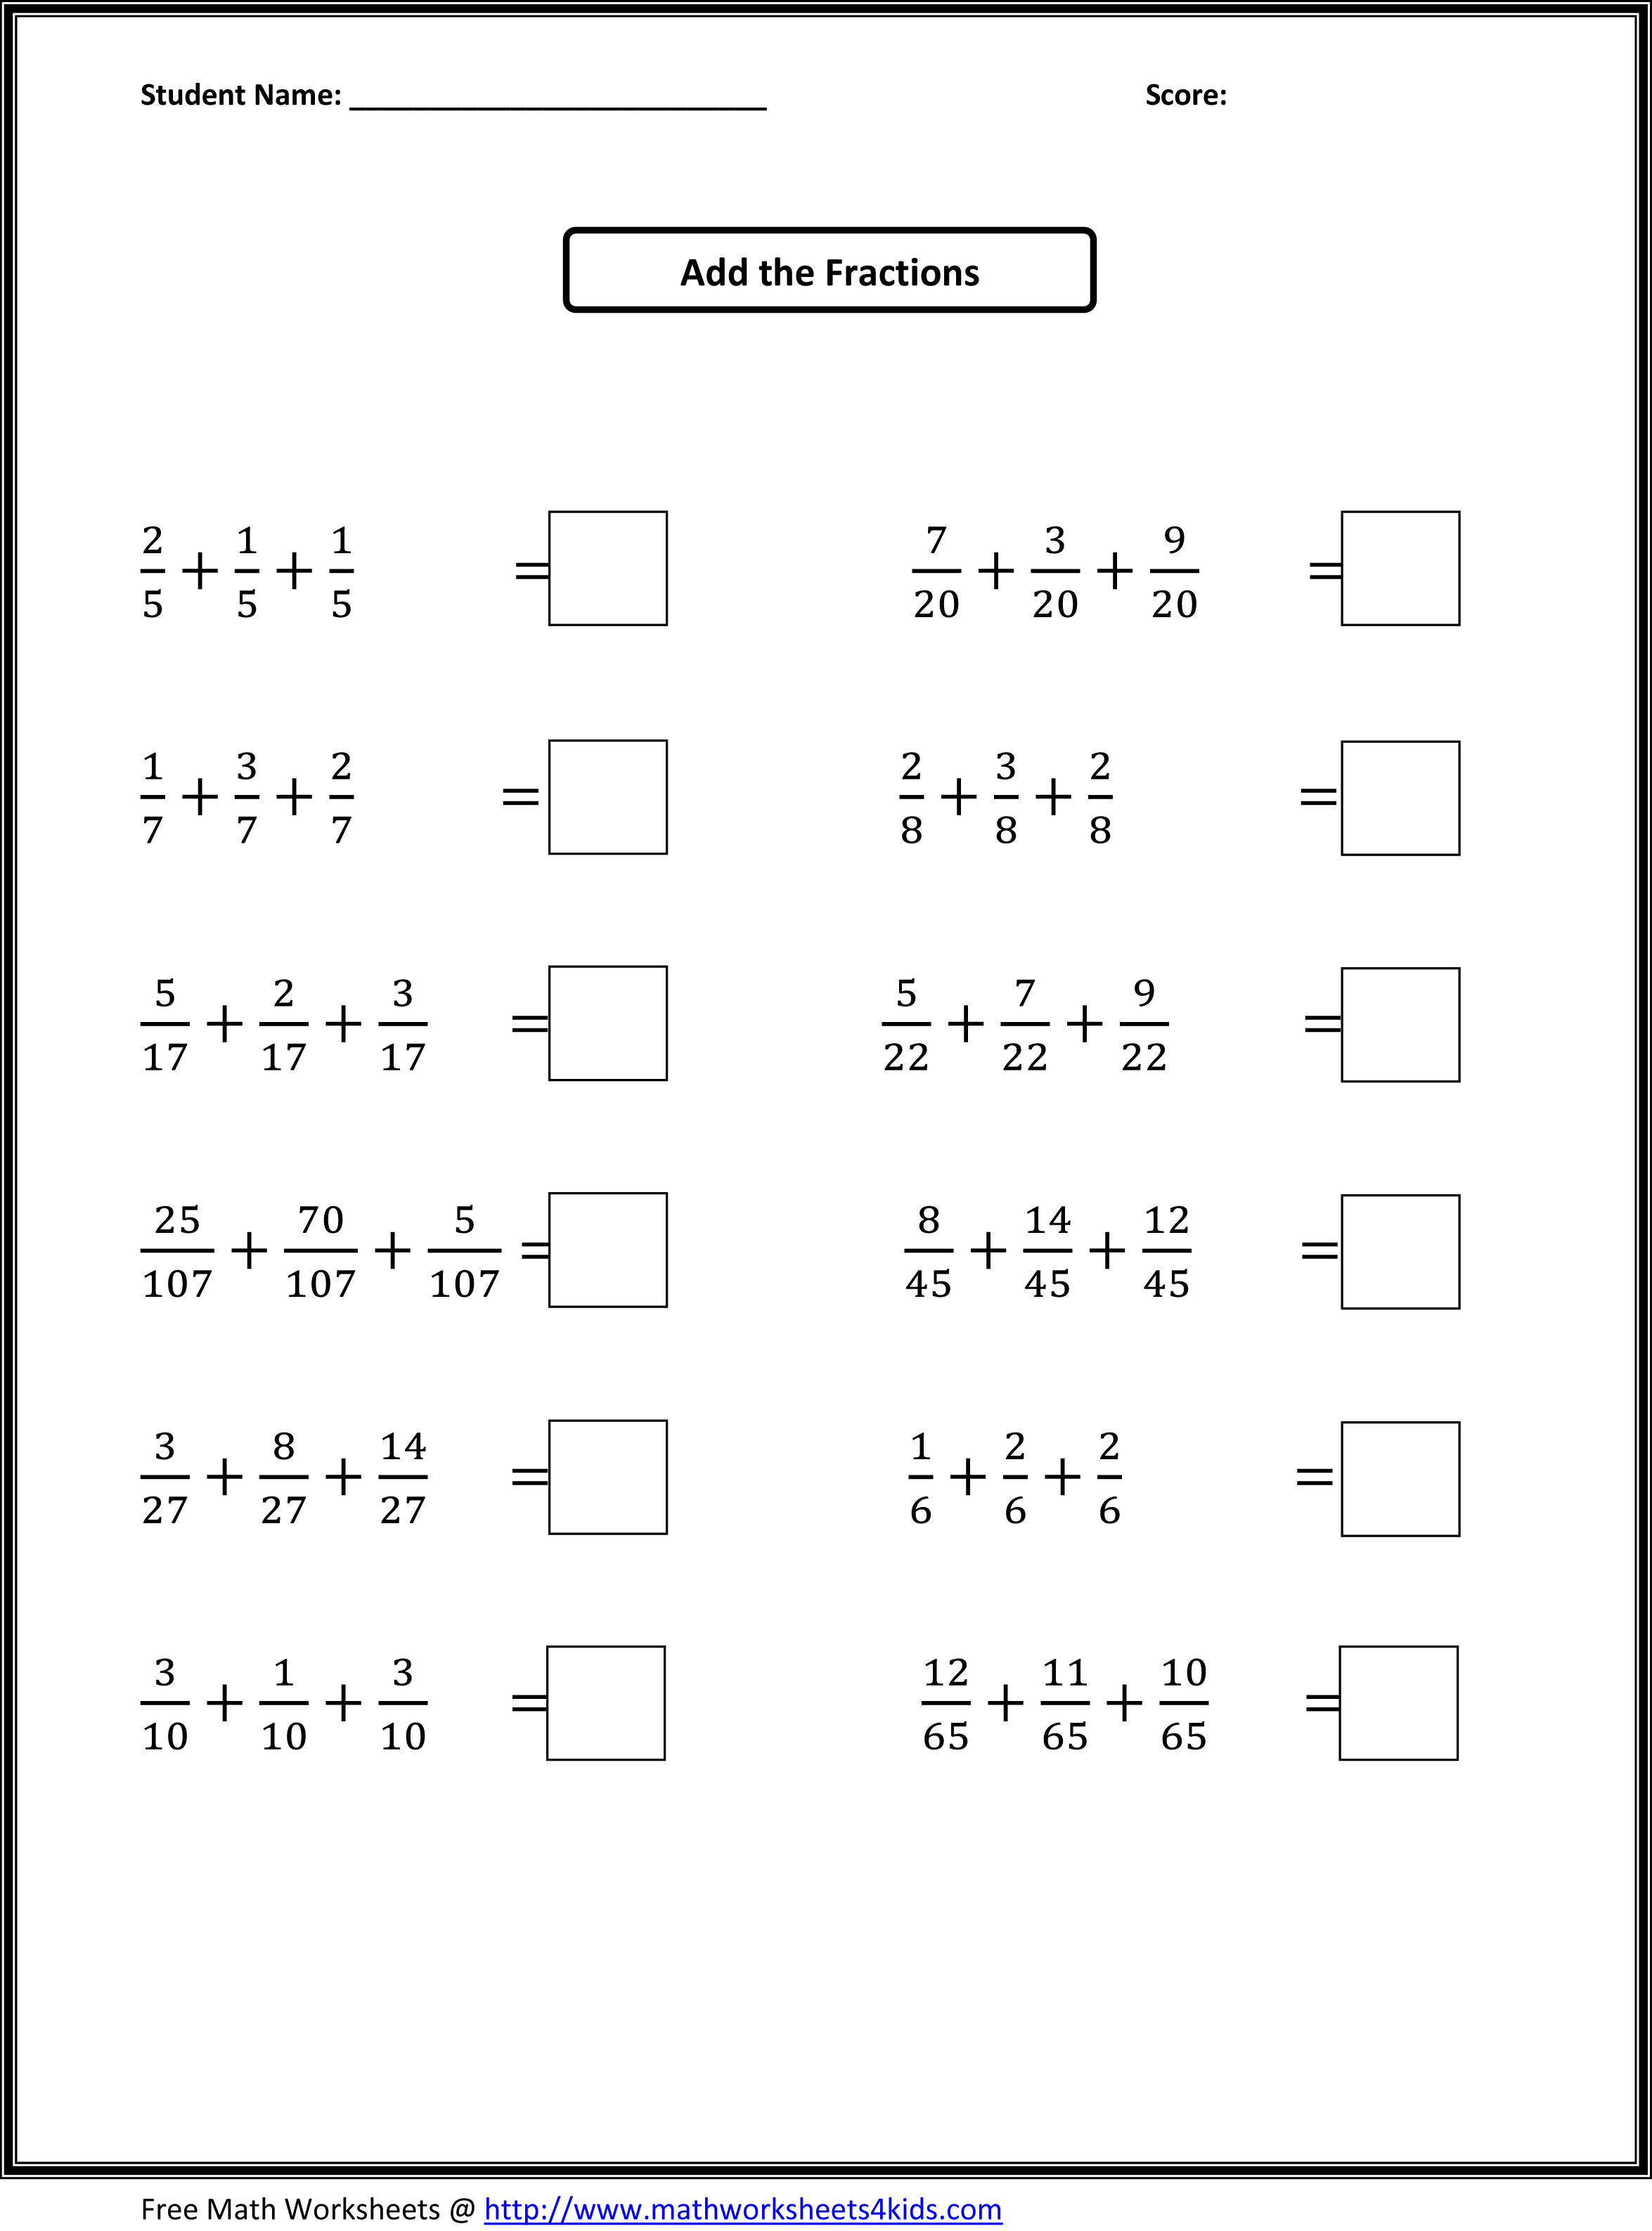 Fraction Worksheets 4th Grade – 4th Grade Fractions Worksheet